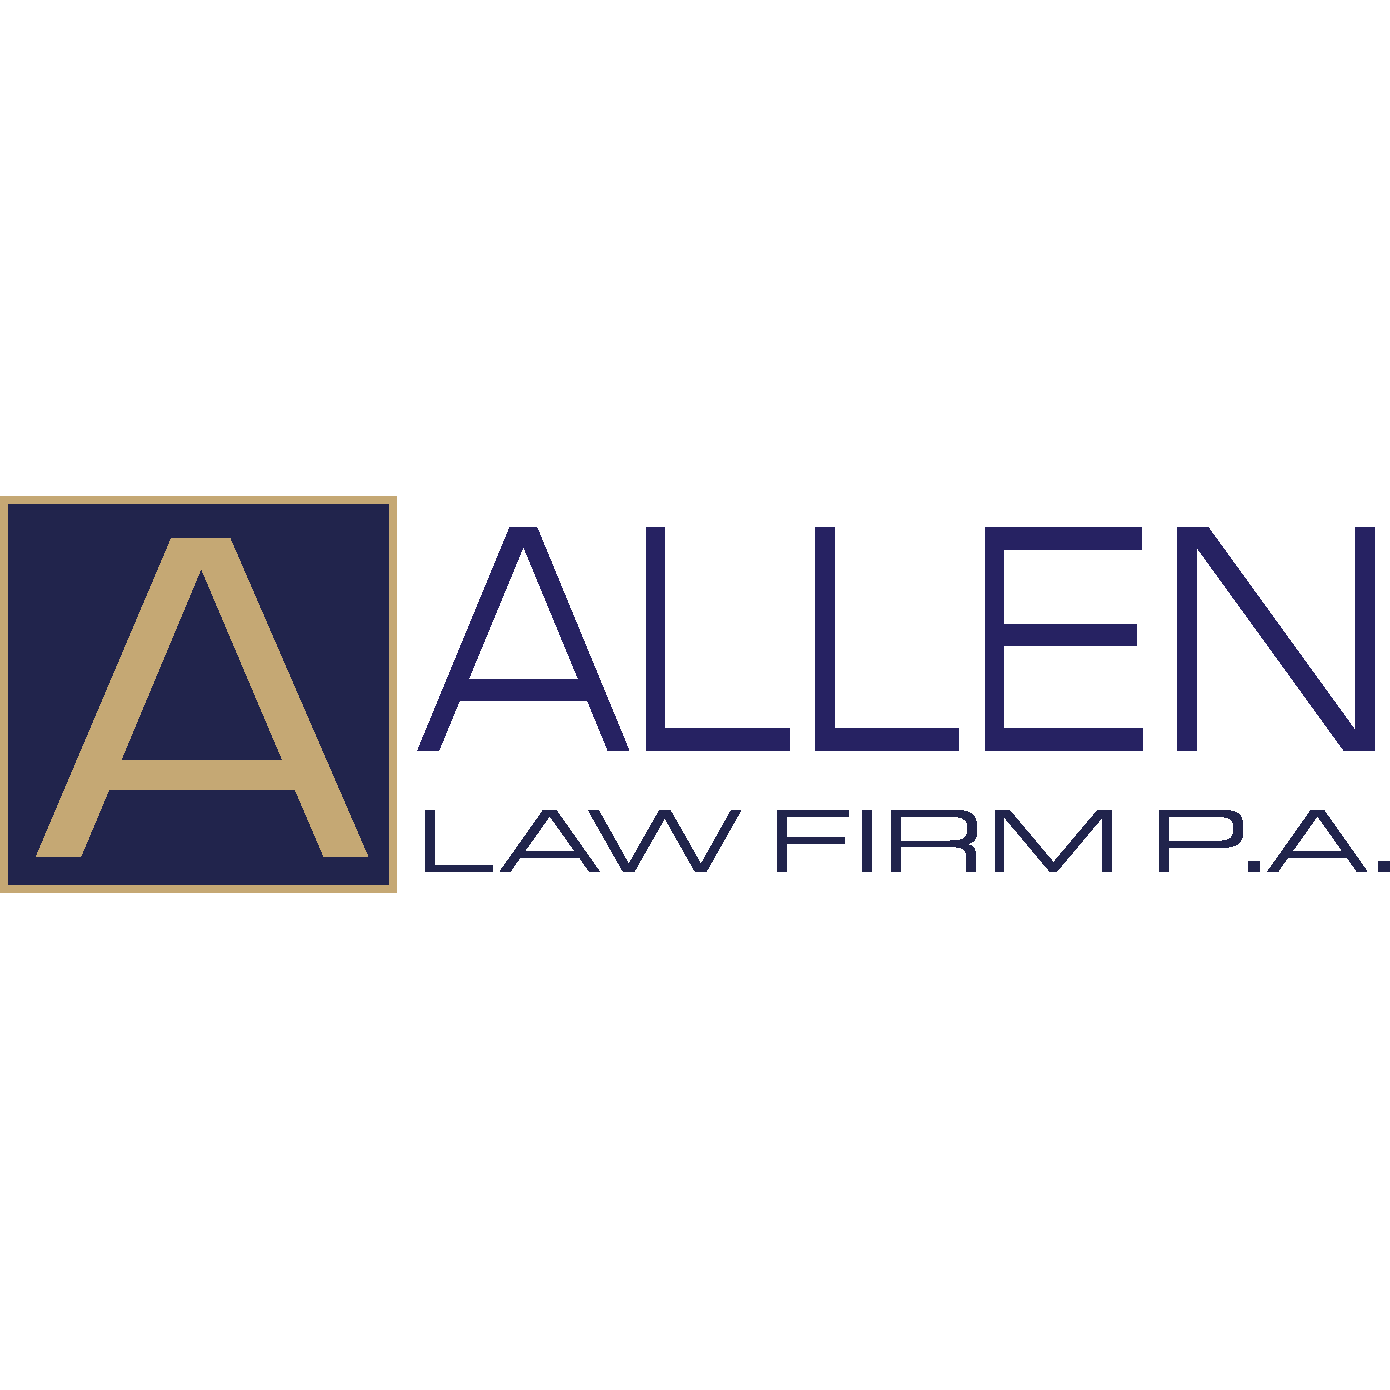 Allen Law Firm, P.A. image 1